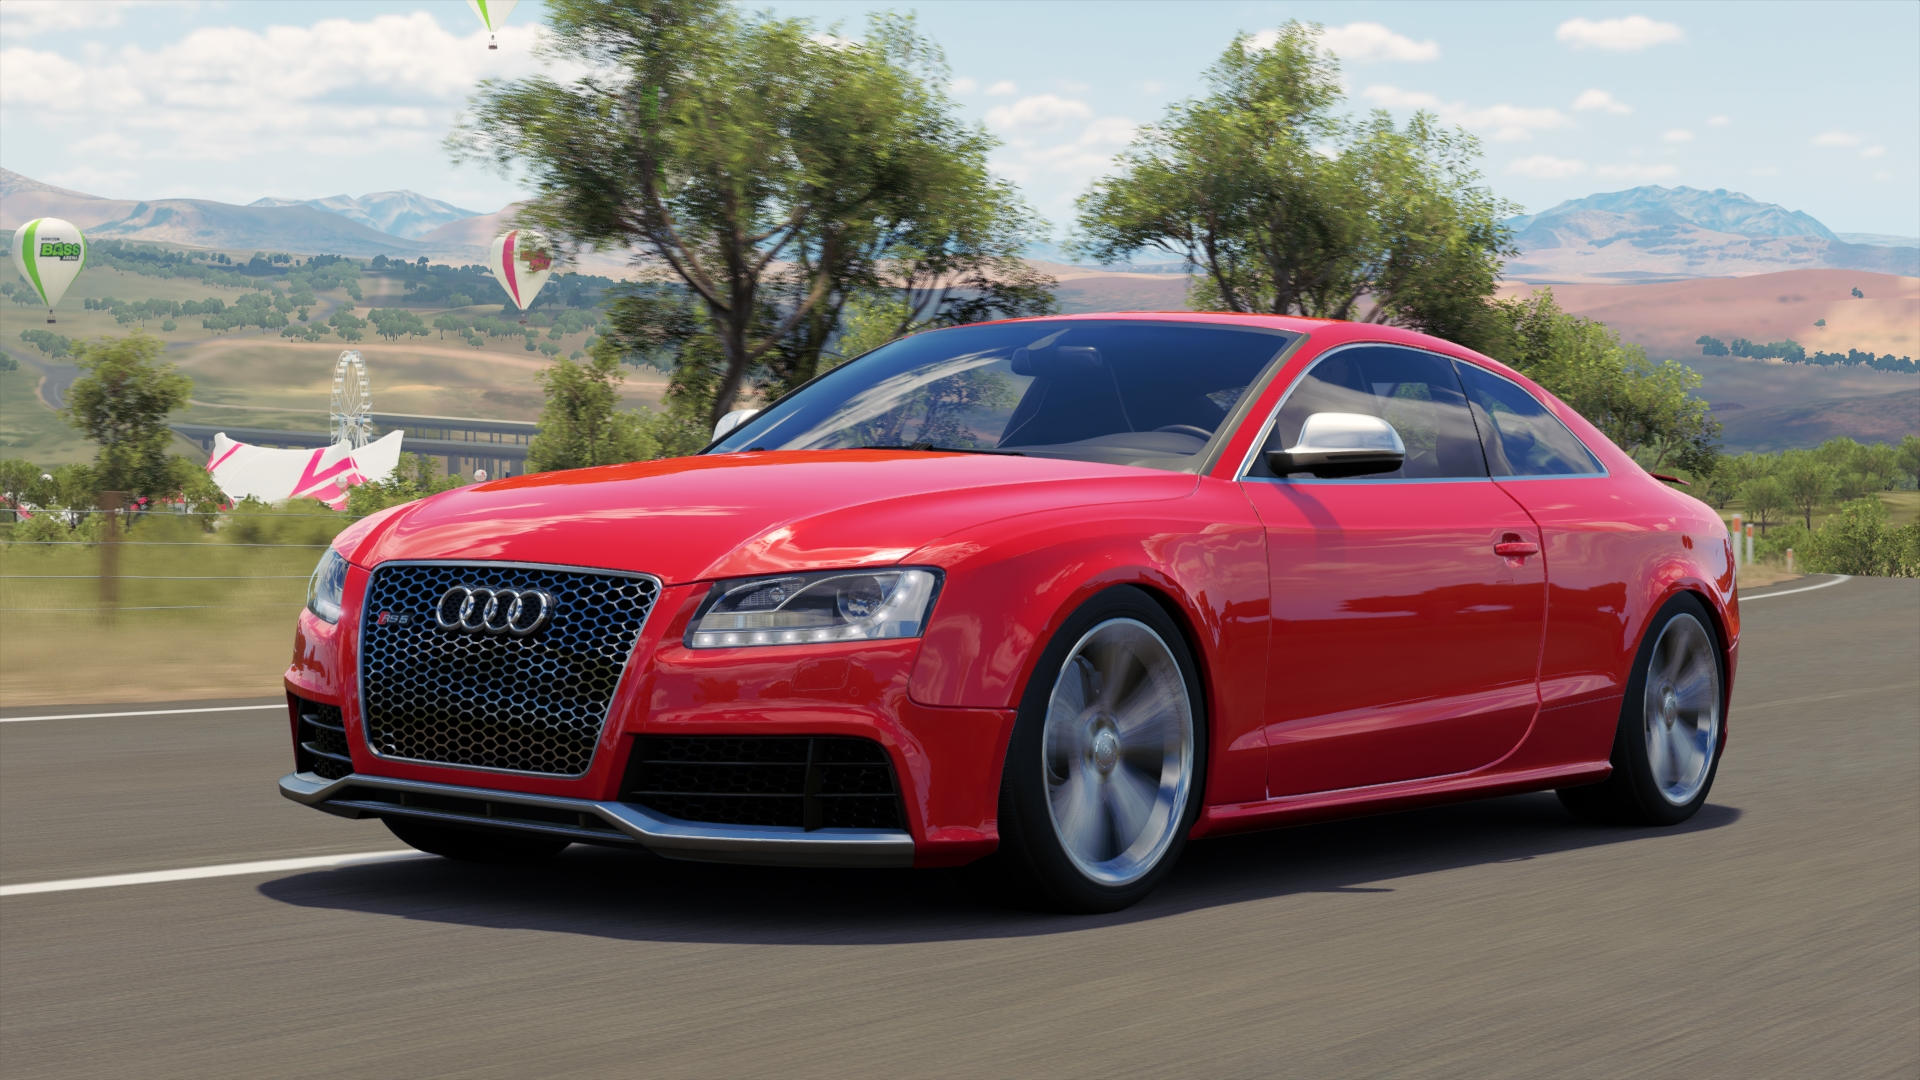 Audi RS 5 Coupé | Forza Motorsport Wiki | FANDOM powered by Wikia